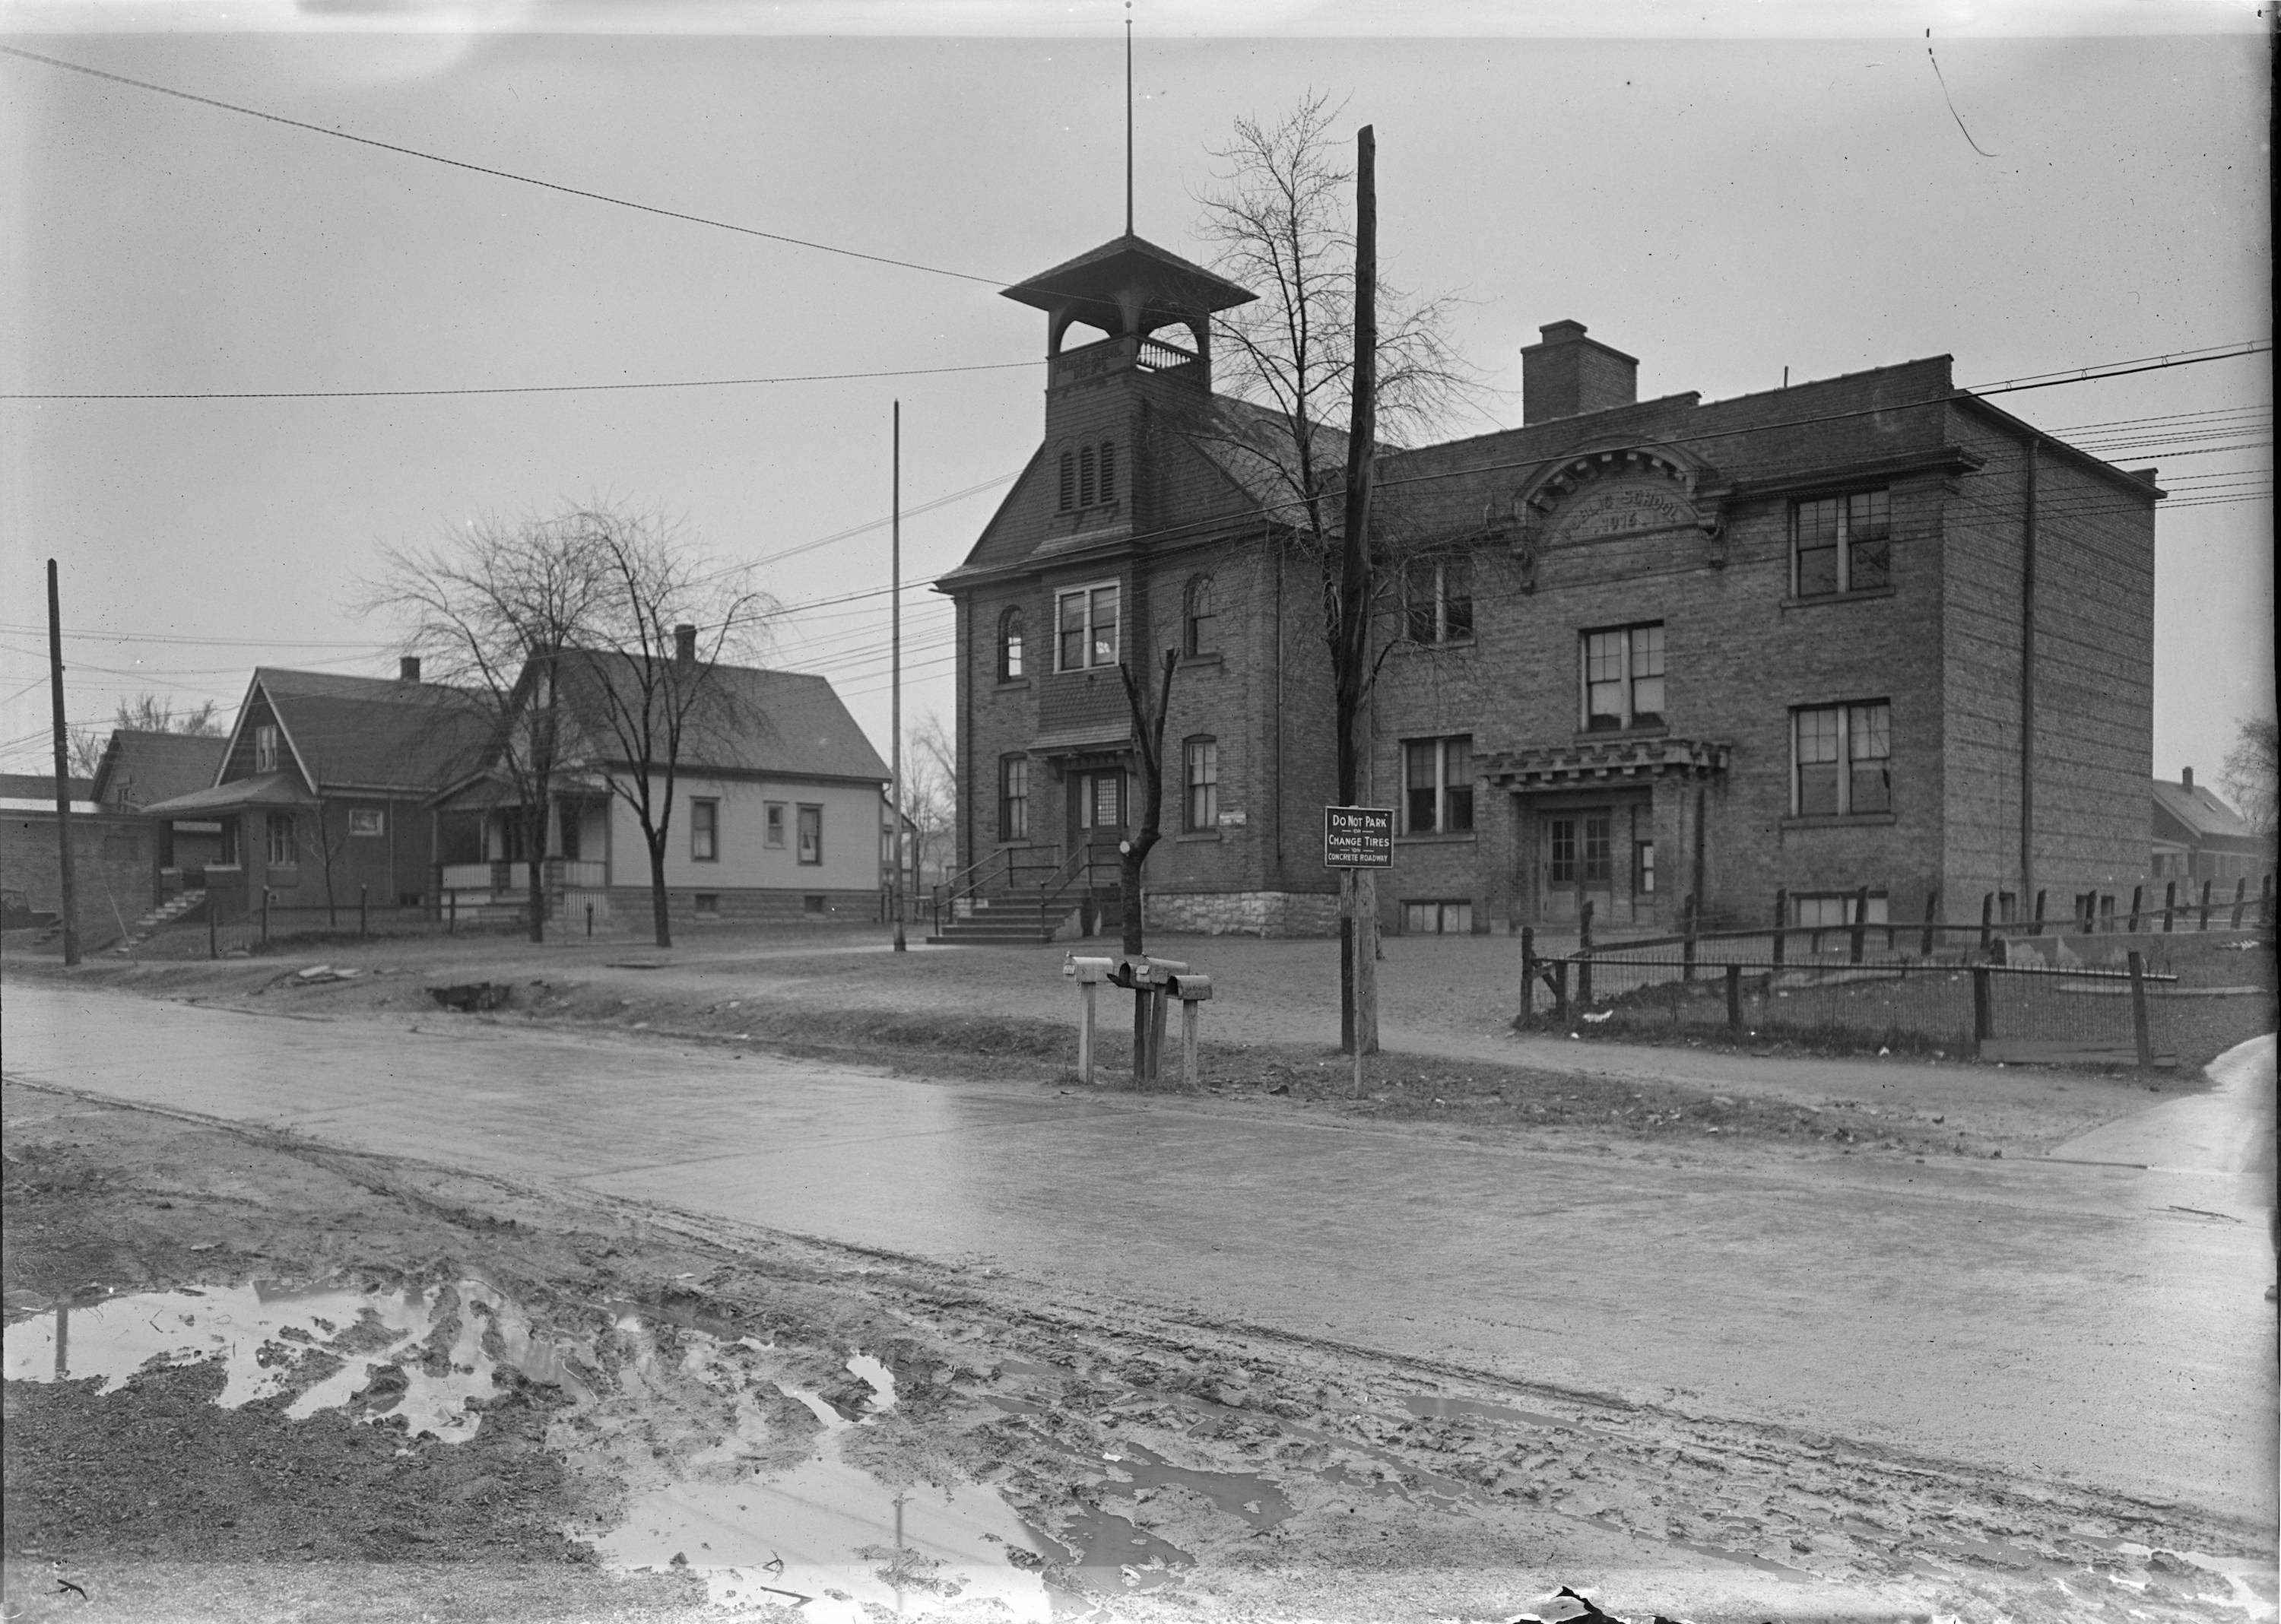 <table class=&quot;lightbox&quot;><tr><td colspan=2 class=&quot;lightbox-title&quot;>Public School Building</td></tr><tr><td colspan=2 class=&quot;lightbox-caption&quot;>Built in 1916, this public school building belonged to District No. 2 in Milwaukee and stood on present-day S. 13th Street. It is pictured here in 1924.</td></tr><tr><td colspan=2 class=&quot;lightbox-spacer&quot;></td></tr><tr class=&quot;lightbox-detail&quot;><td class=&quot;cell-title&quot;>Source: </td><td class=&quot;cell-value&quot;>From the Roman B. Kwaniewski Photographs Collection, Archives. University of Wisconsin-Milwaukee Libraries.<br /><a href=&quot;https://collections.lib.uwm.edu/digital/collection/mke-polonia/id/33066/rec/4&quot; target=&quot;_blank&quot;>University of Wisconsin-Milwaukee Libraries</a></td></tr><tr class=&quot;filler-row&quot;><td colspan=2>&nbsp;</td></tr></table>